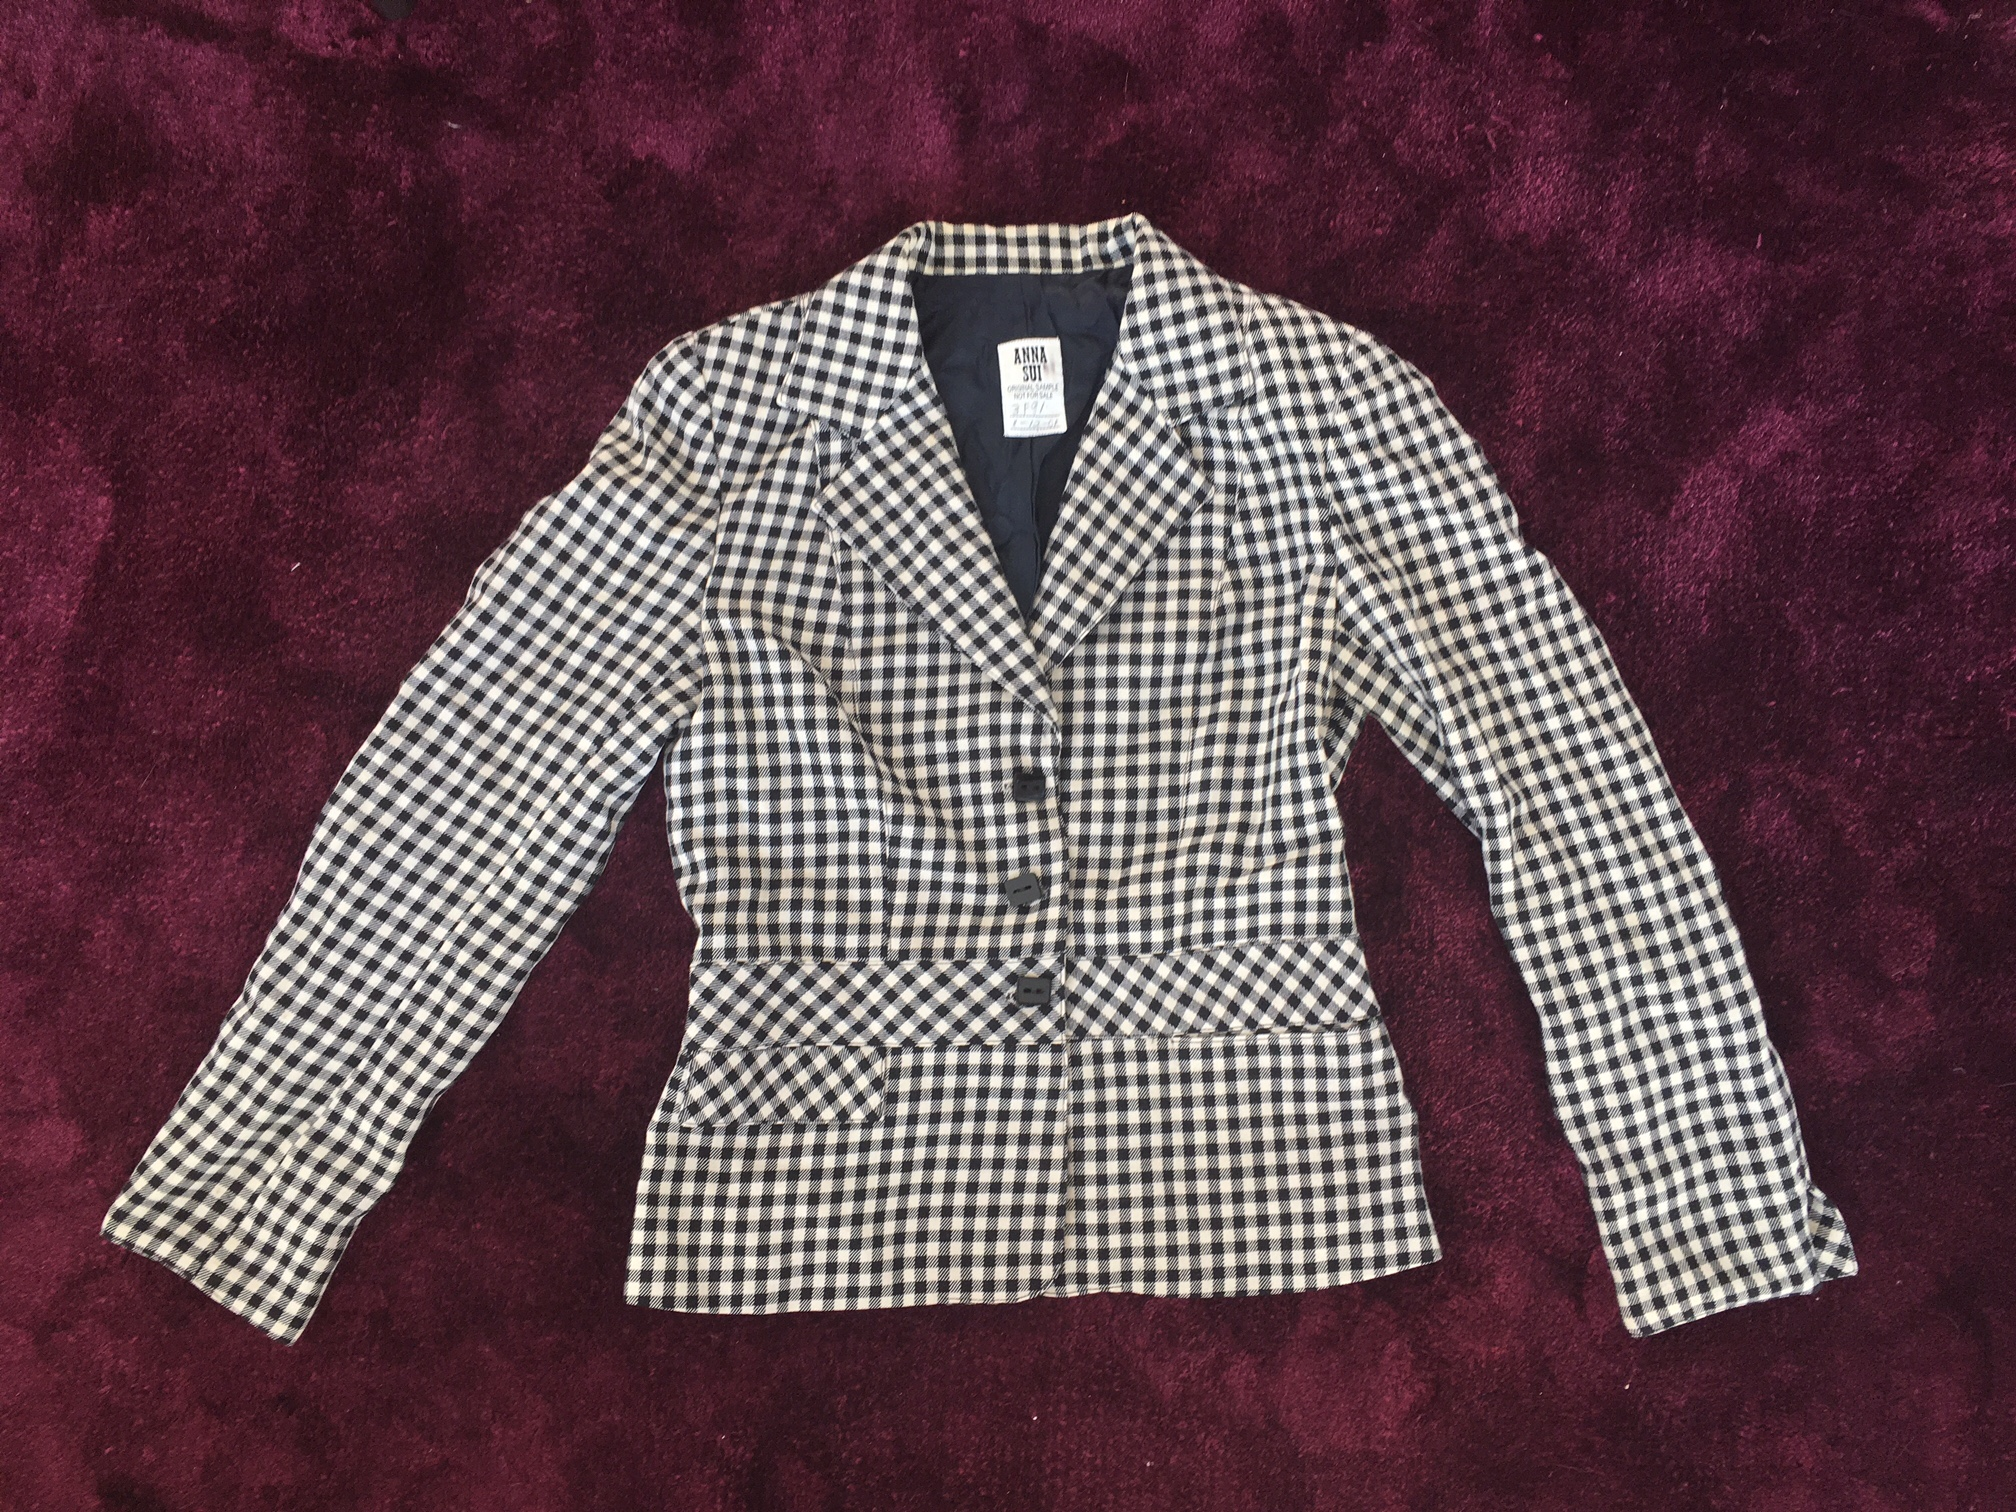 Anna Sui blazer sample, from author's archive, photo: S.Cooper